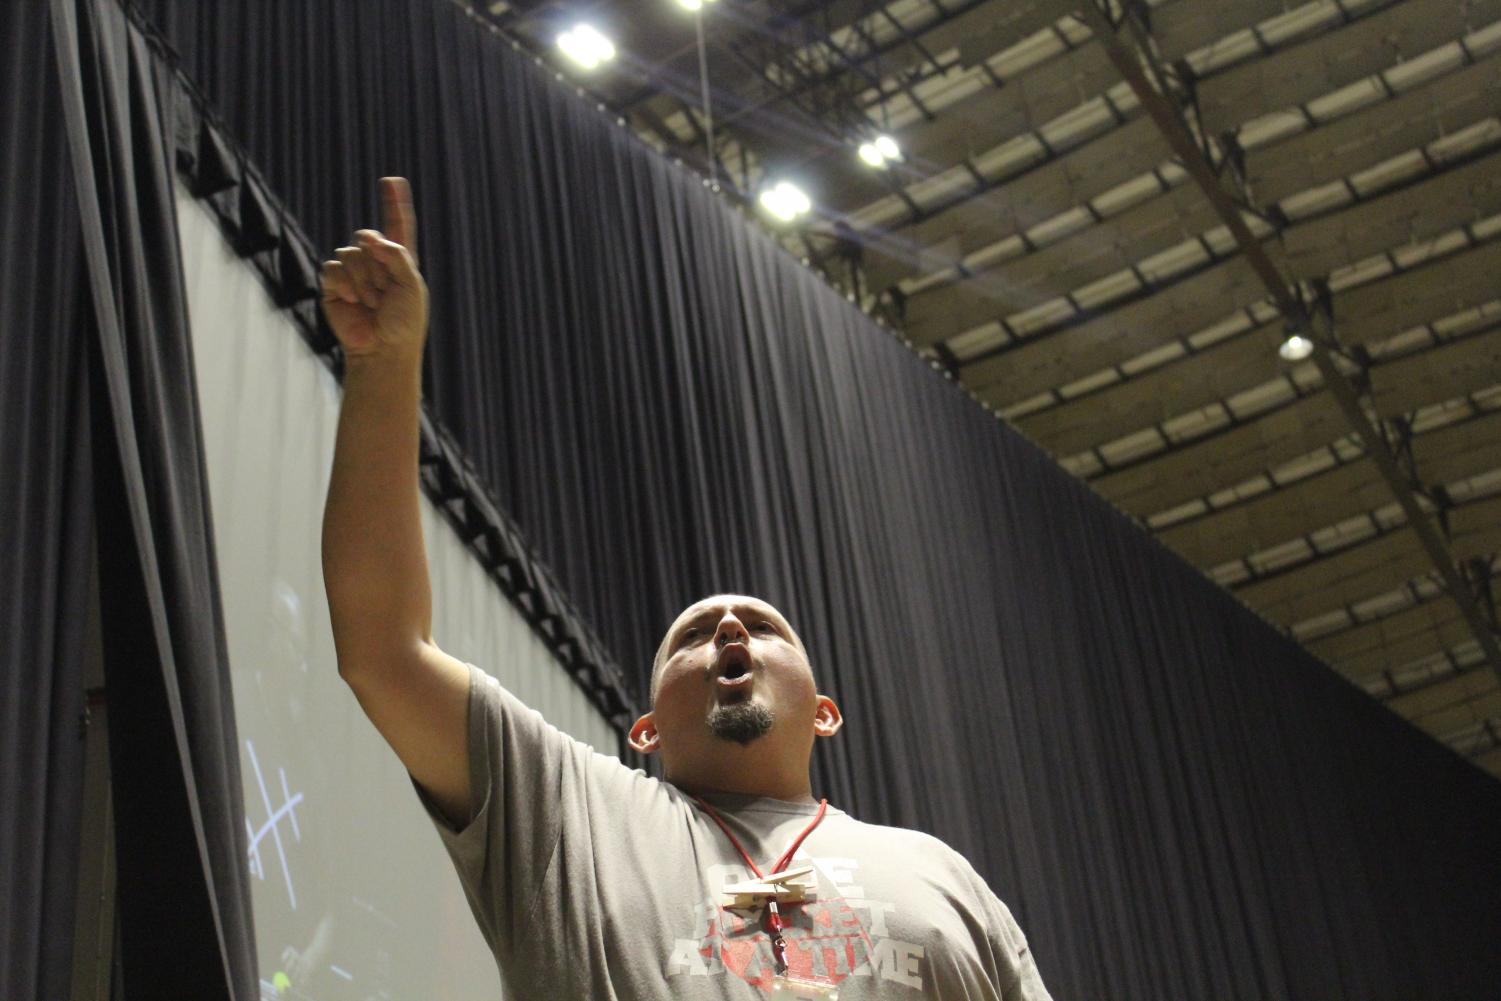 Principal Jesus Hernandez yells out at the Freeman Coliseum during the crowd. This year is Hernandez's eighth year as principal.